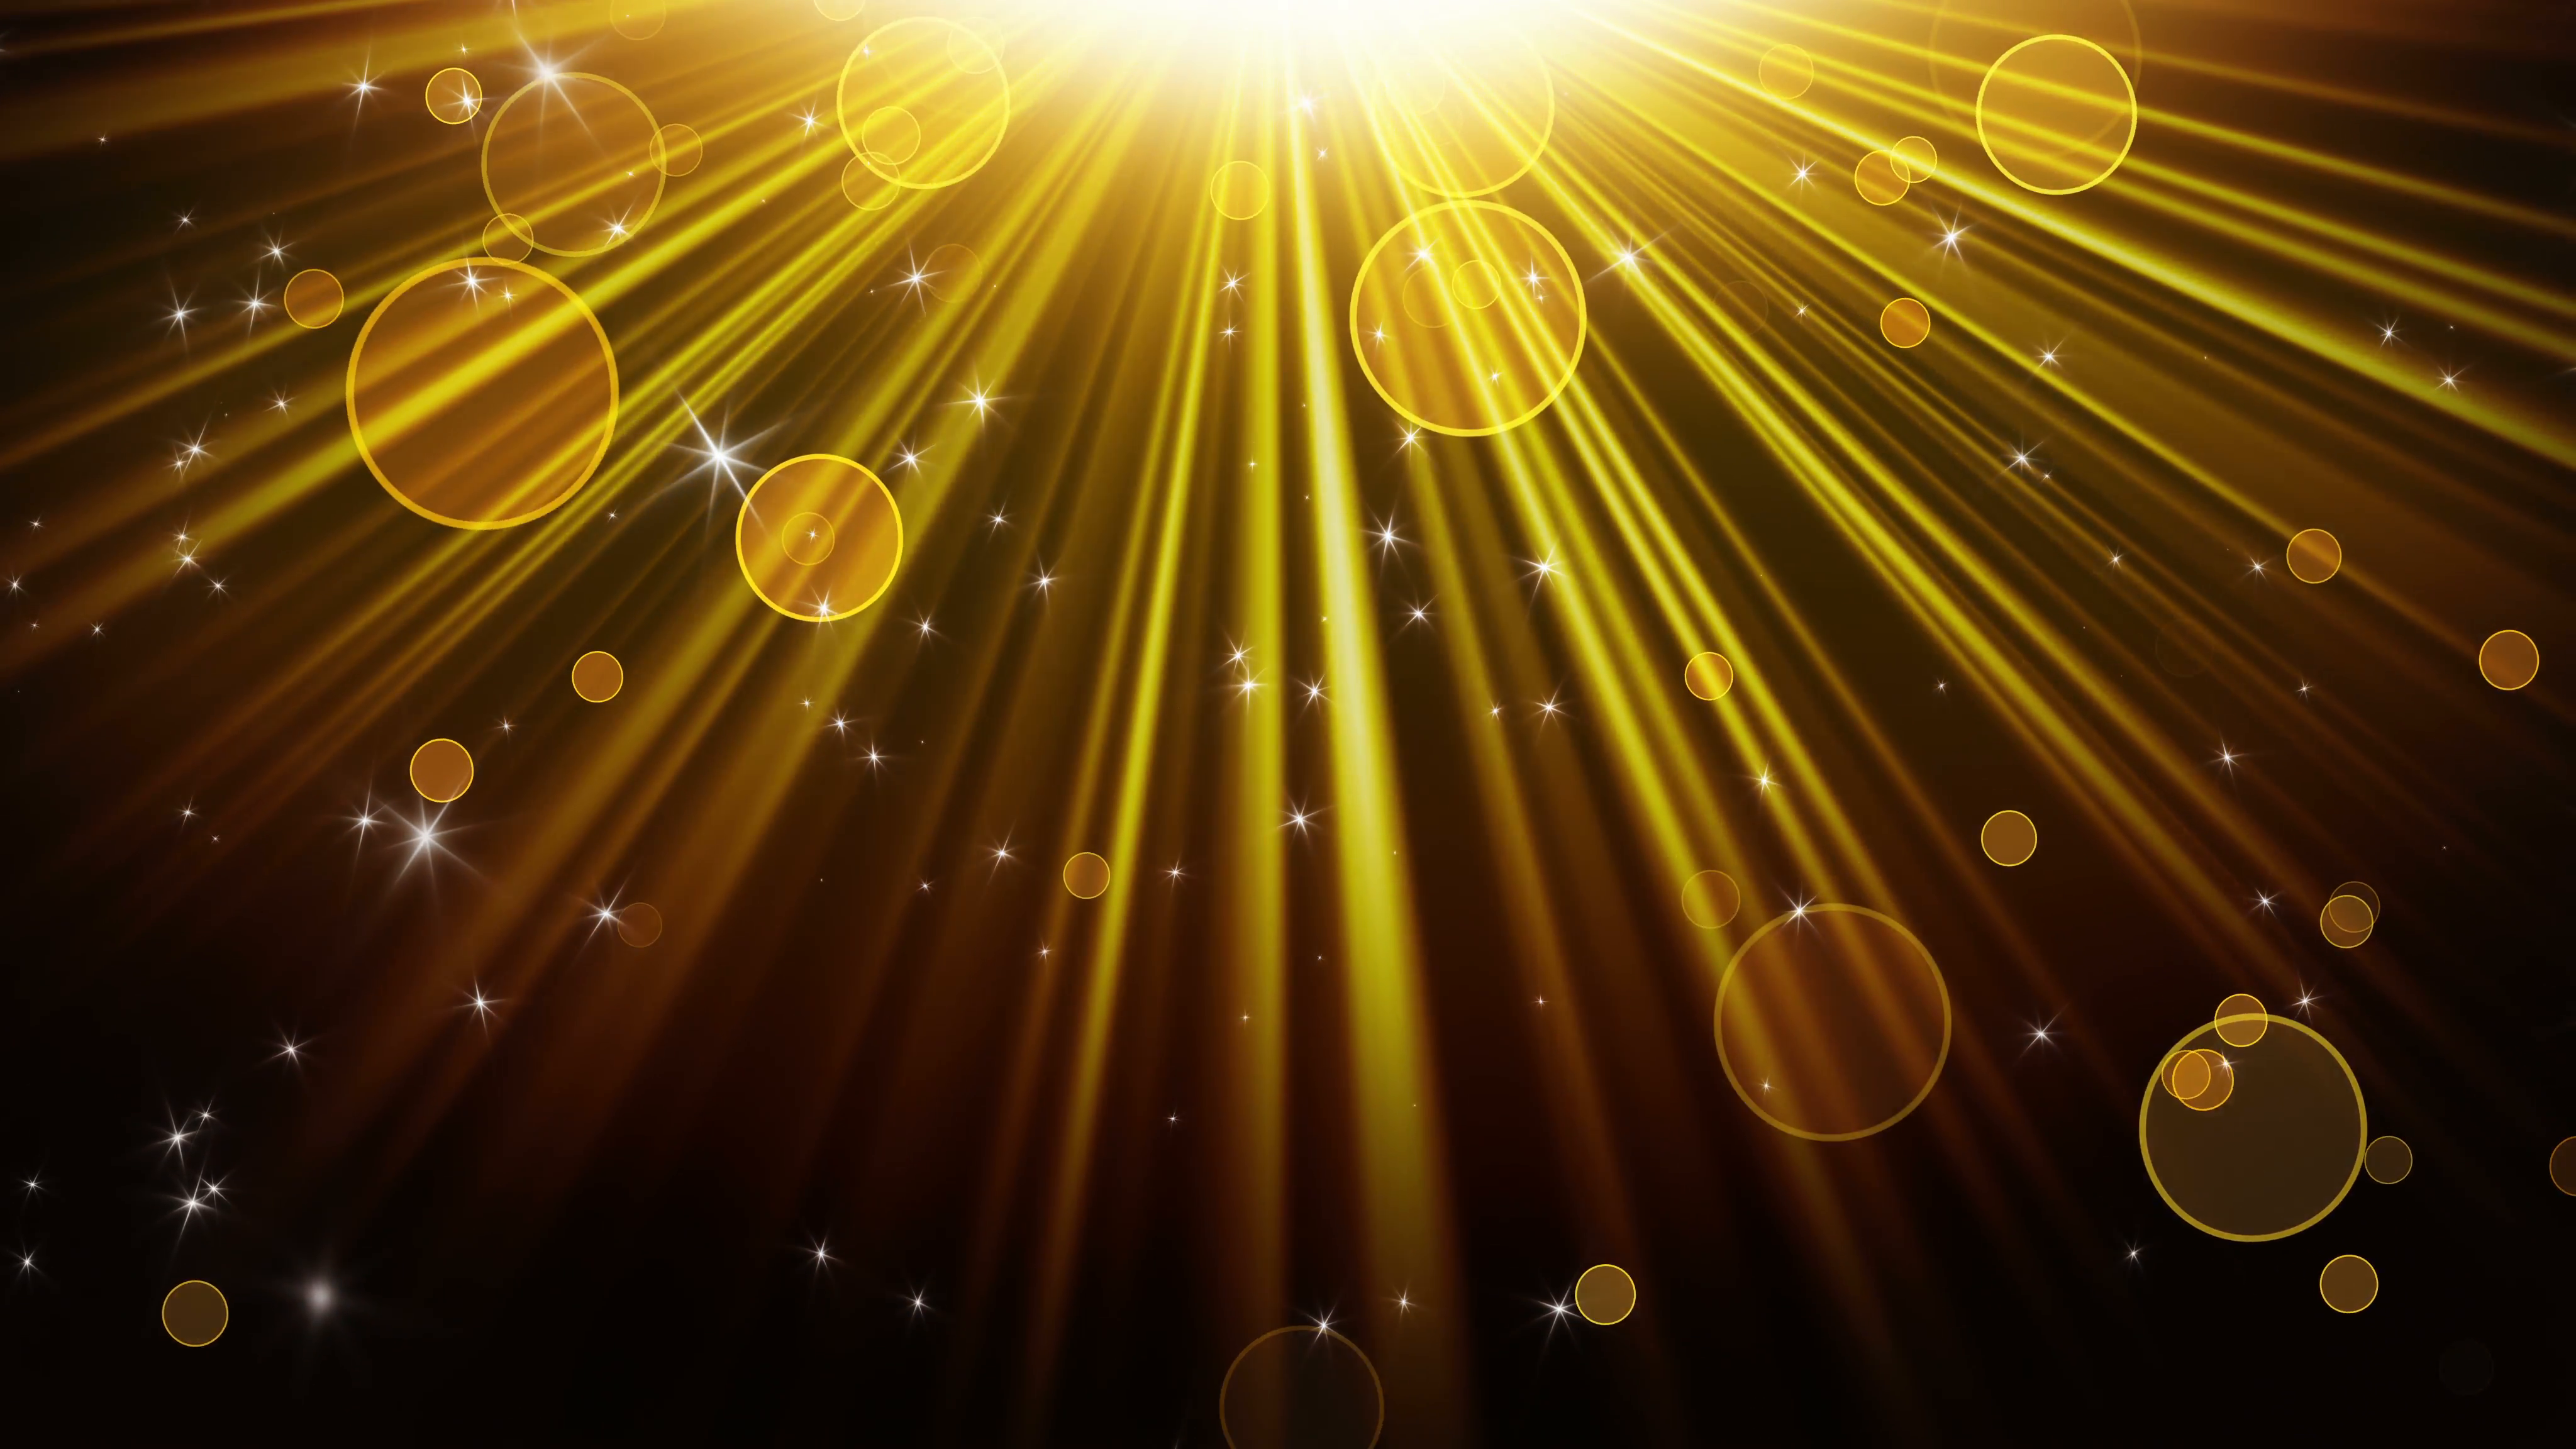 gold rays of light and stars loopable background 4k (4096x2304 ...